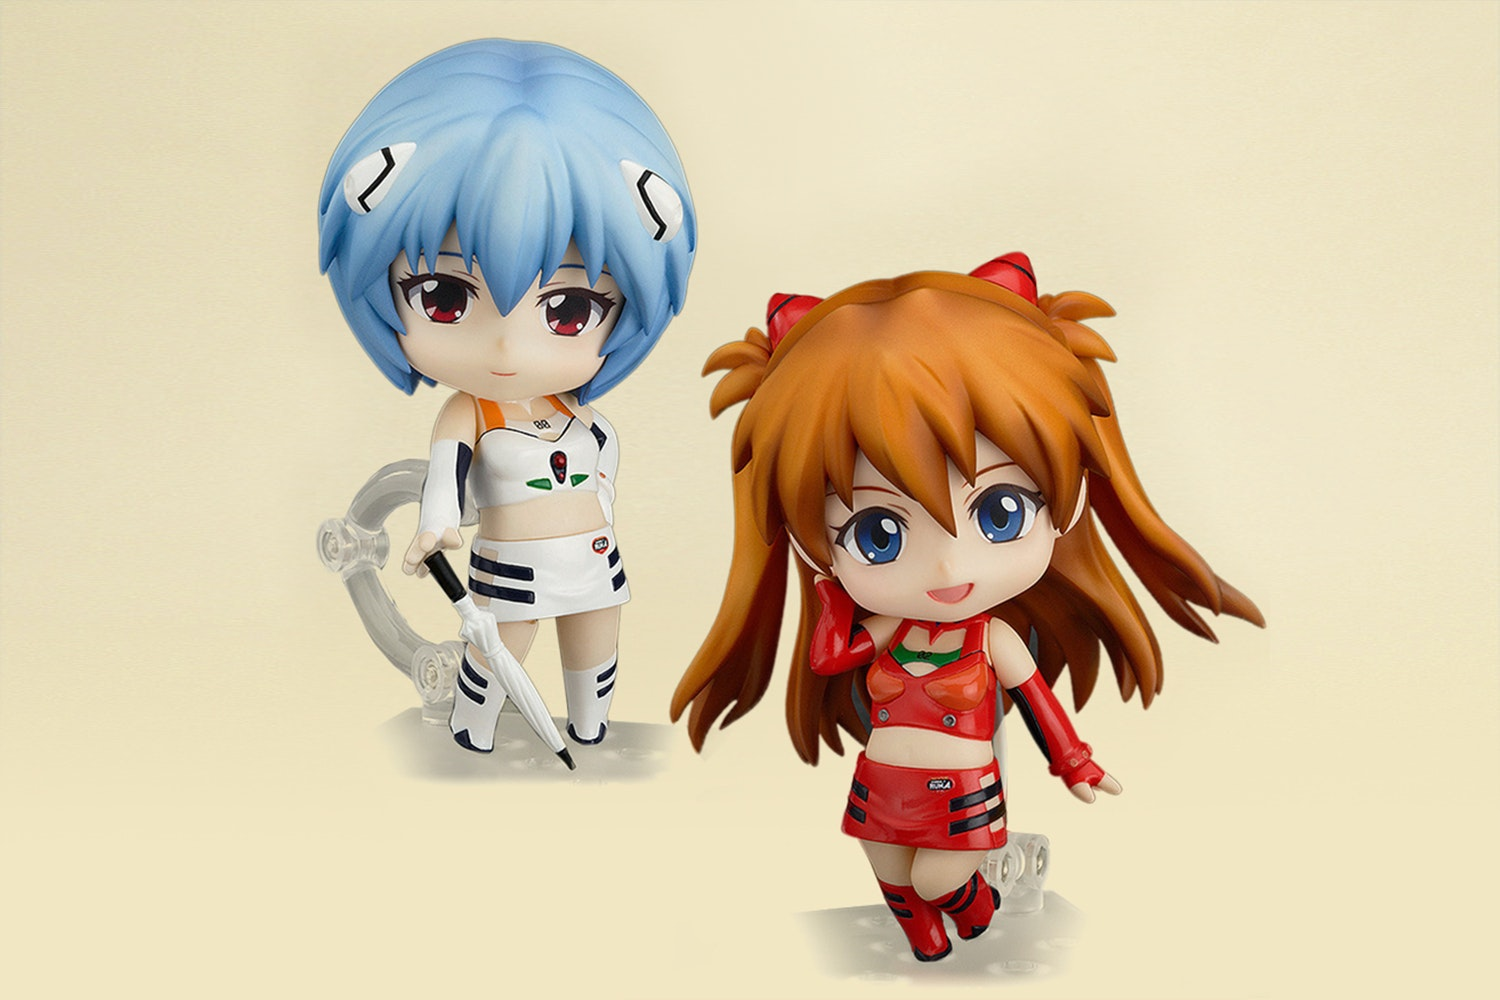 Nendoroid: Evangelion Racing Figures (2-Pack)